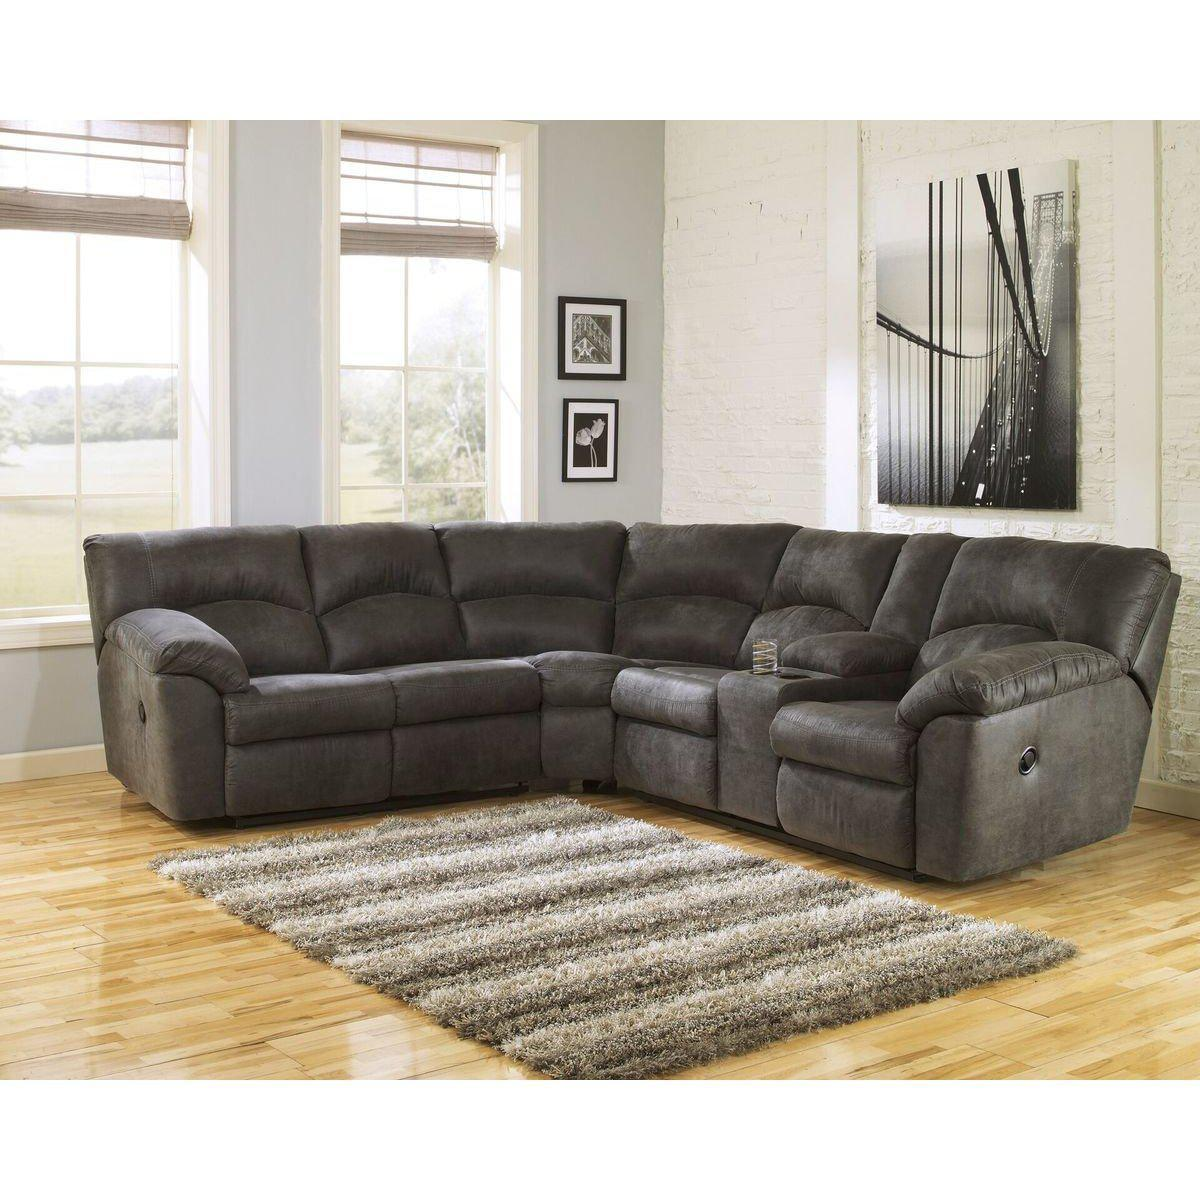 Tambo Sectional & Recliner Set